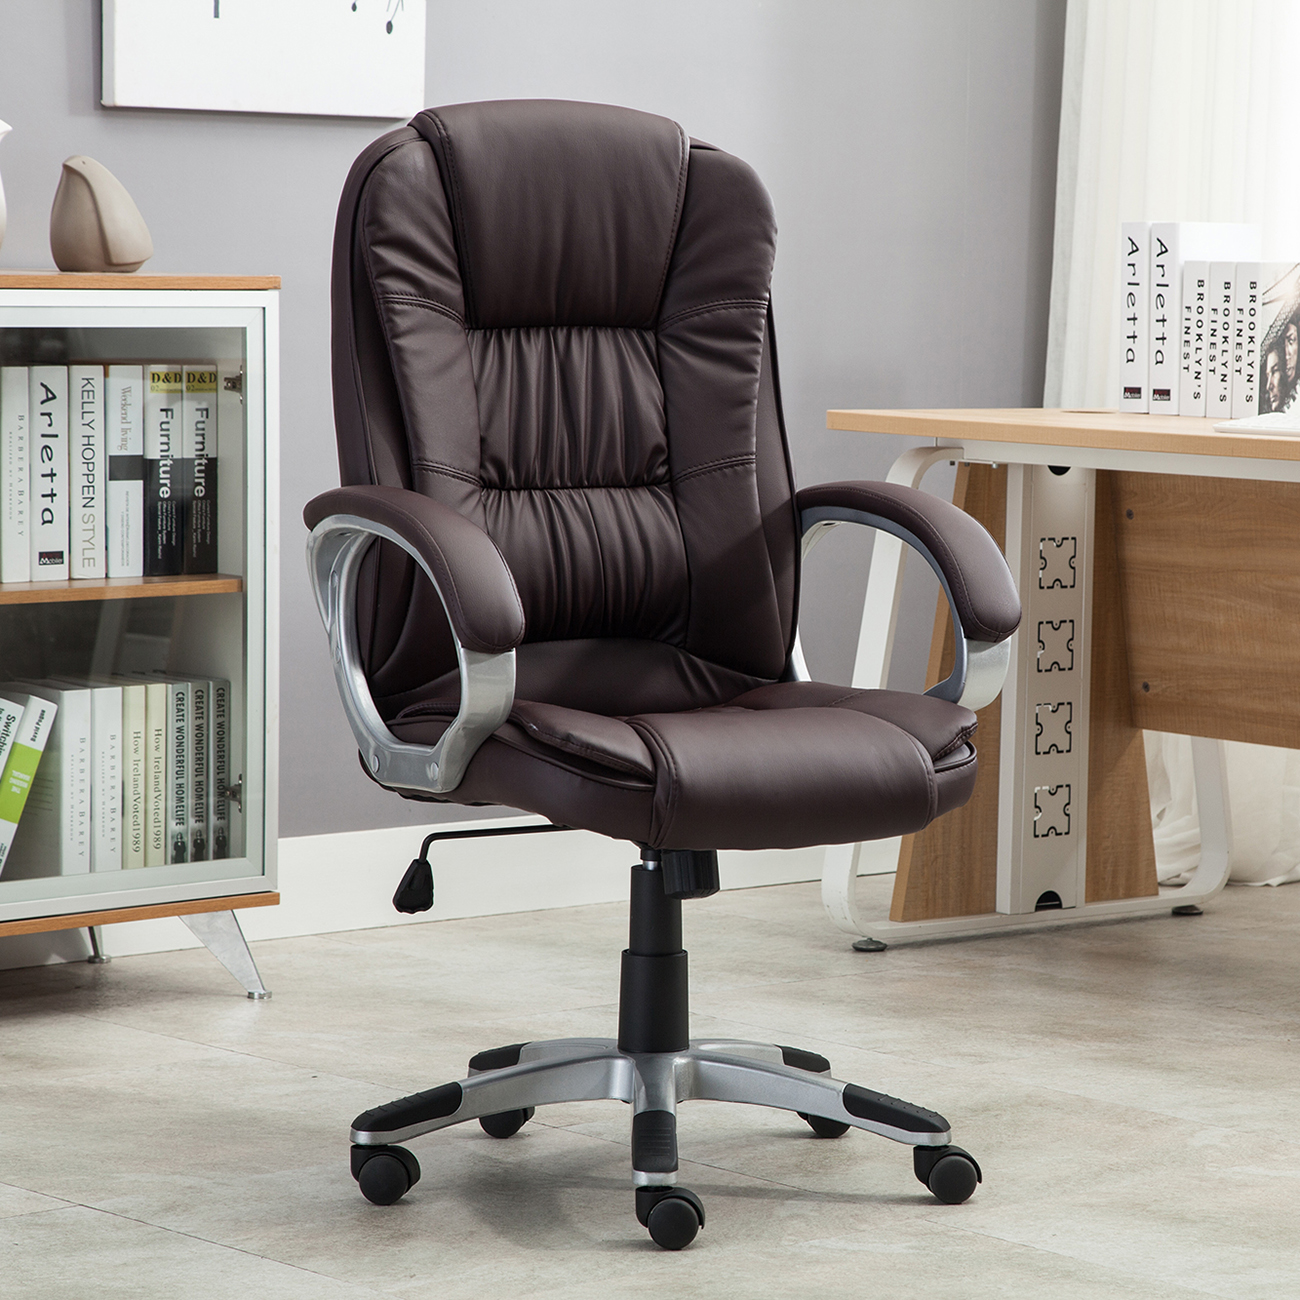 black brown white pu leather modern executive computer desk office